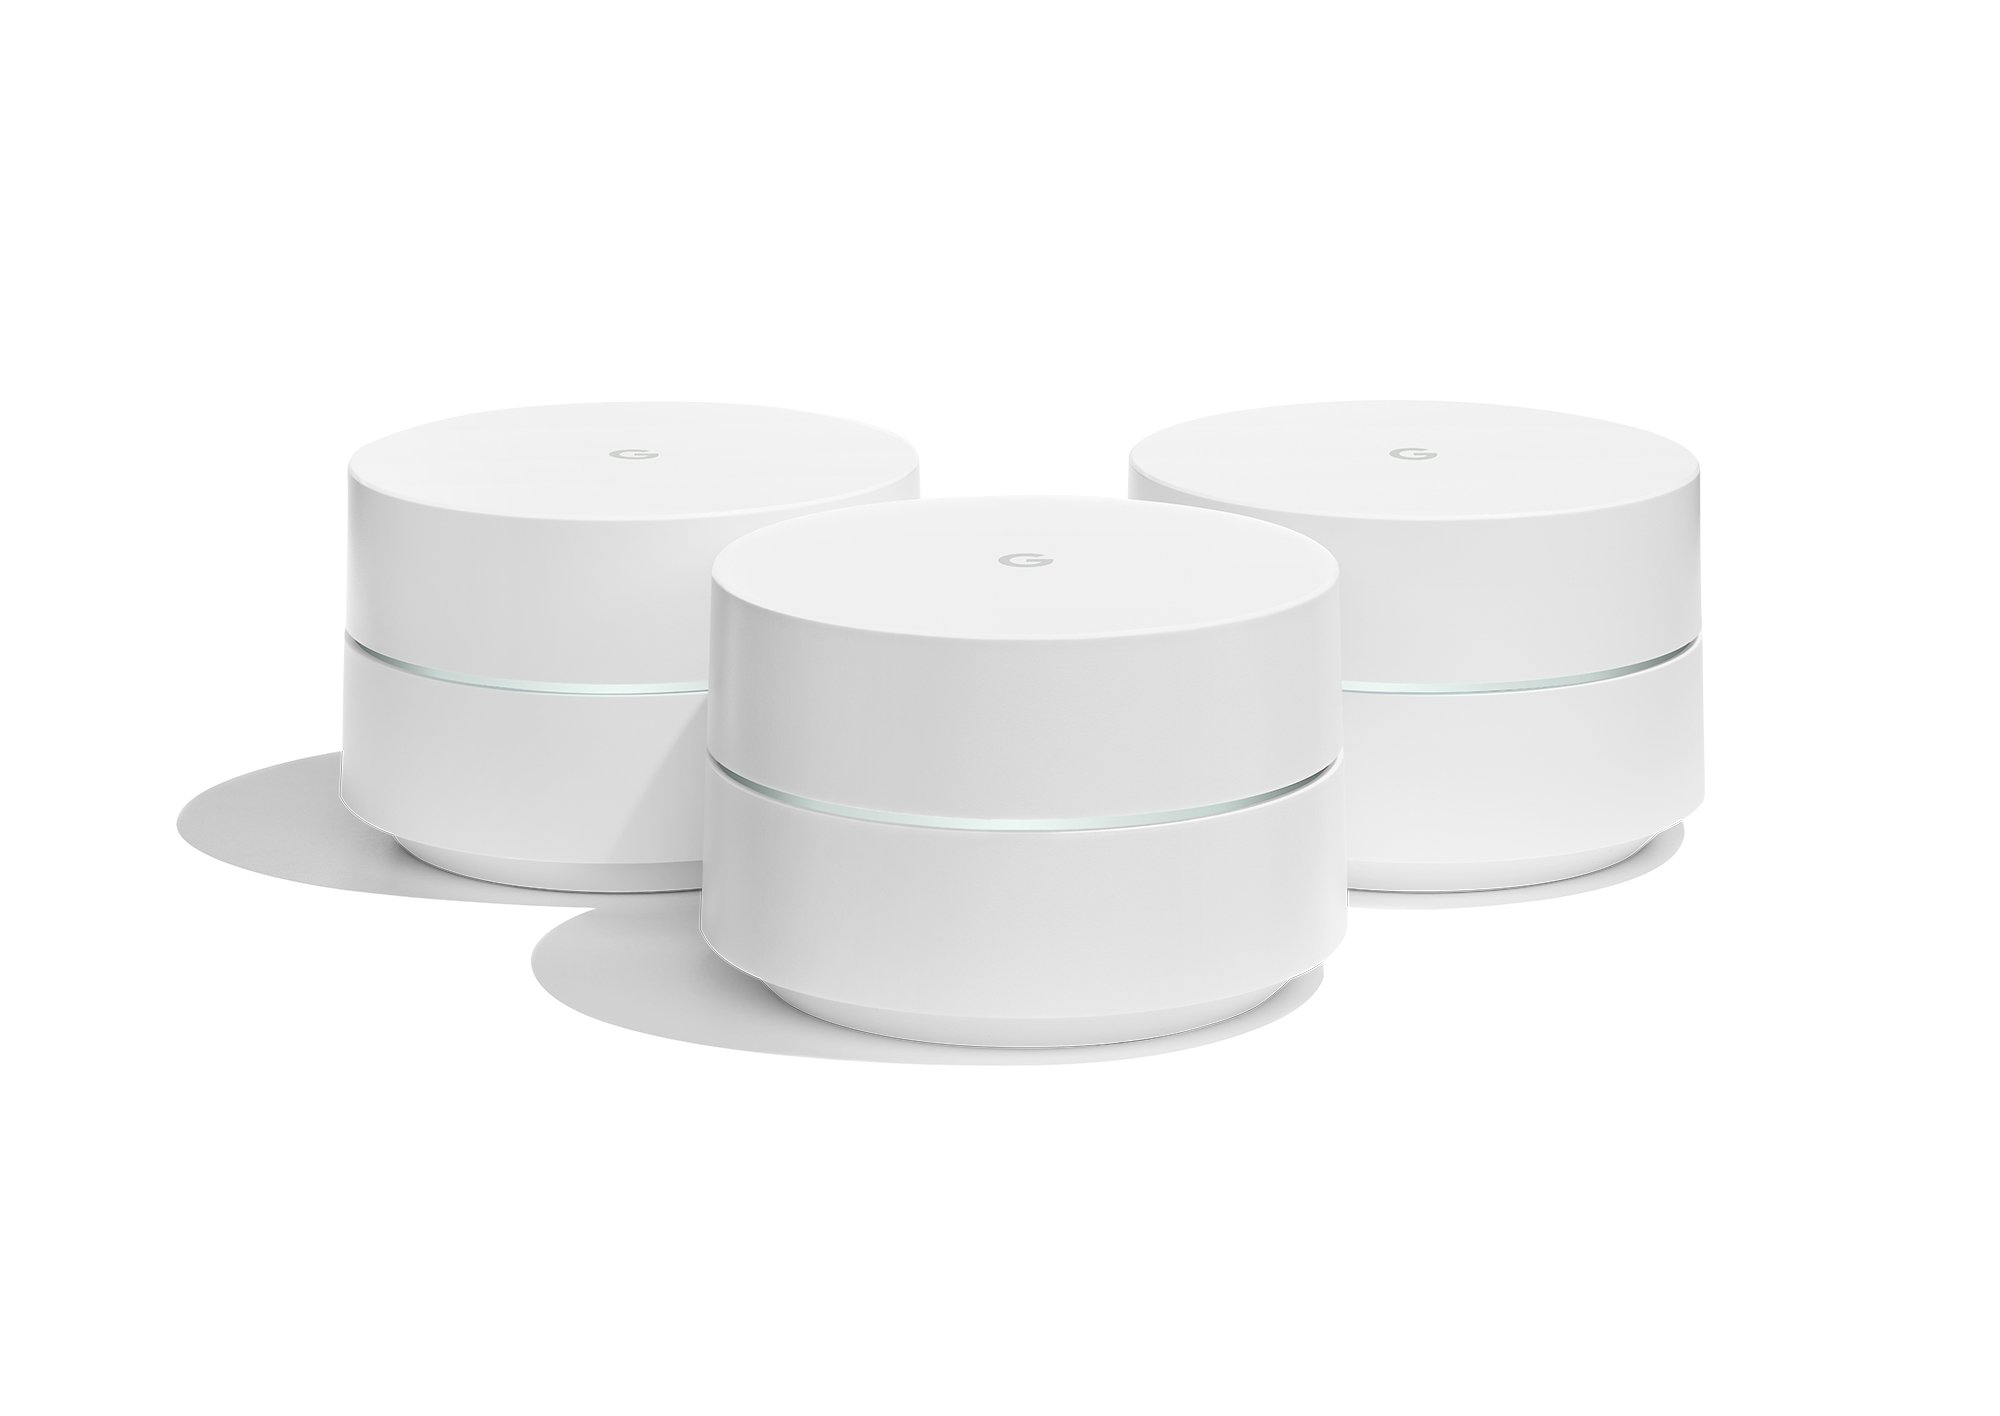 Google WiFi system, 3-Pack - Router replacement for whole home coverage product image